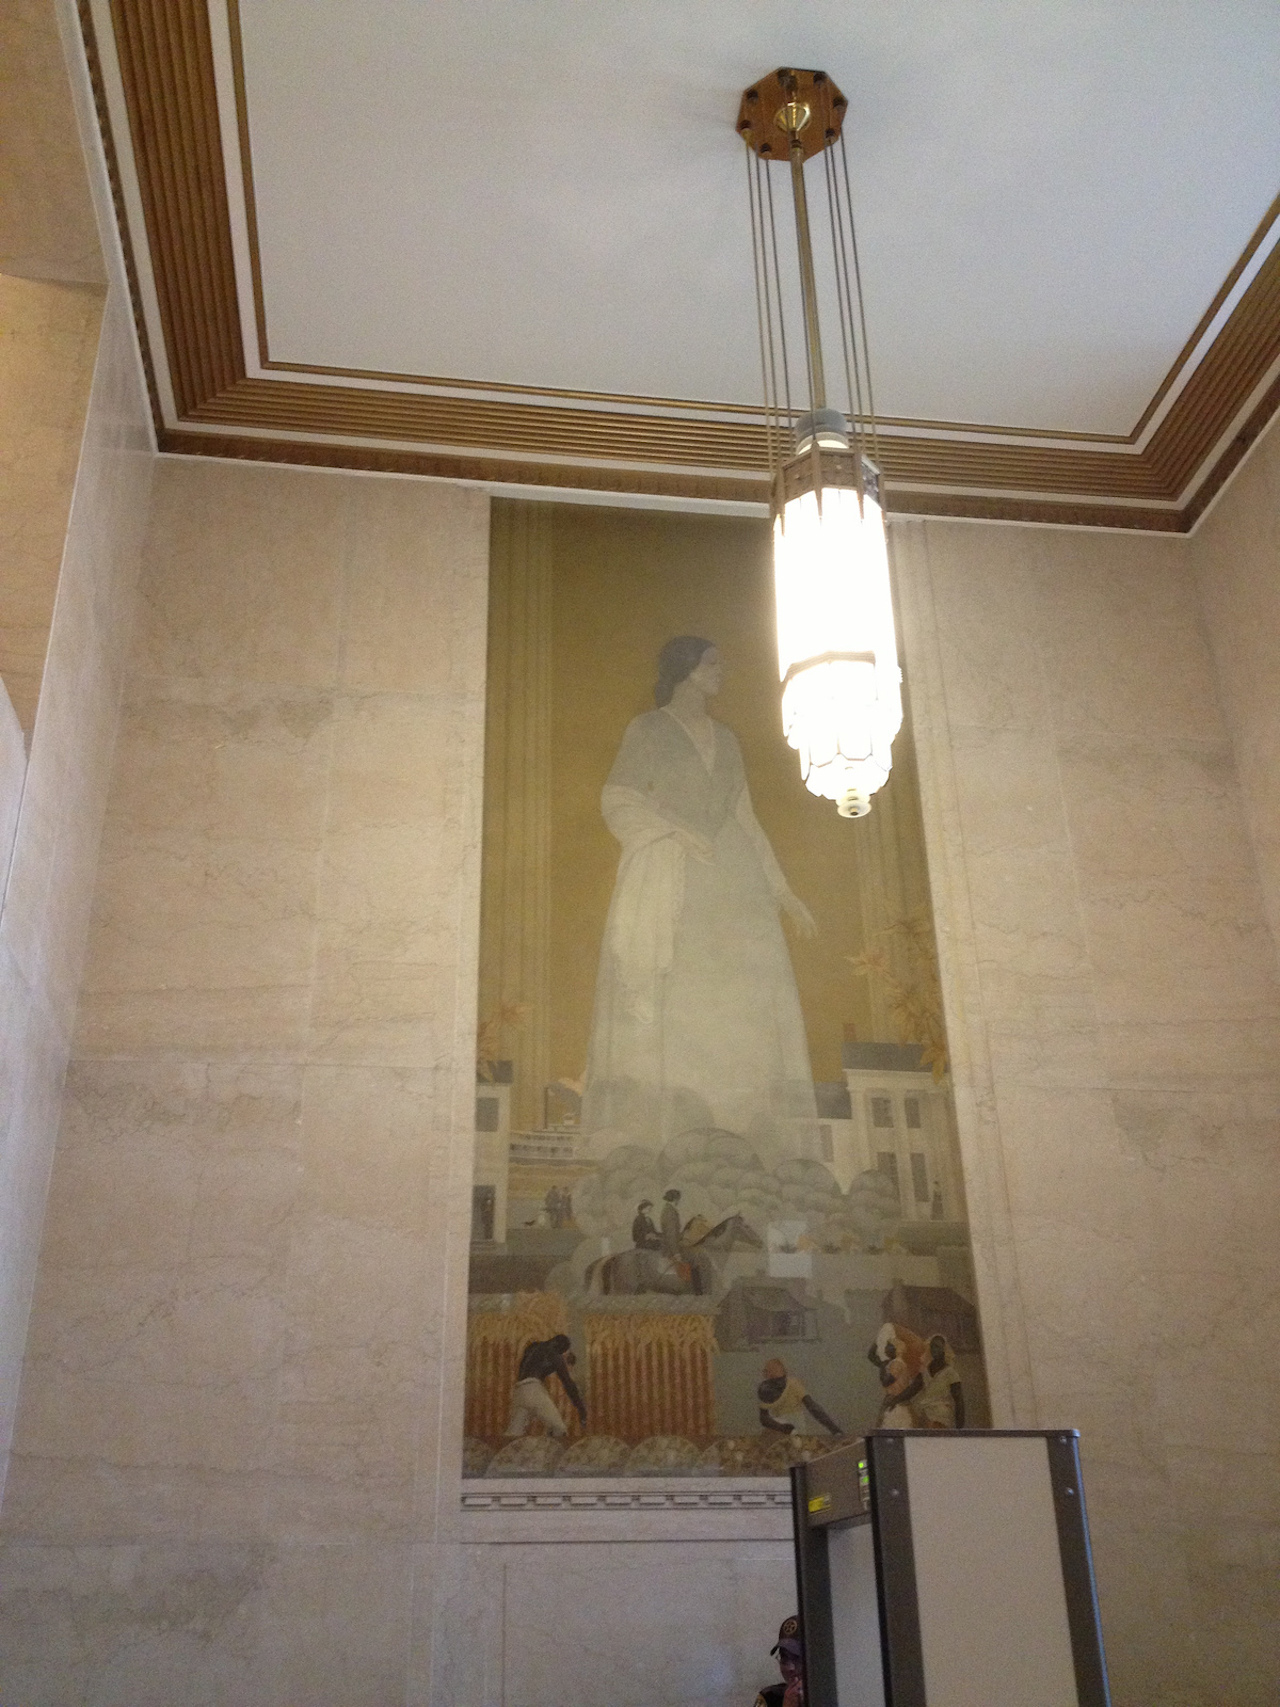 A mural at the courthouse in Jefferson County, Alabama (Image courtesy Ginger Brook)